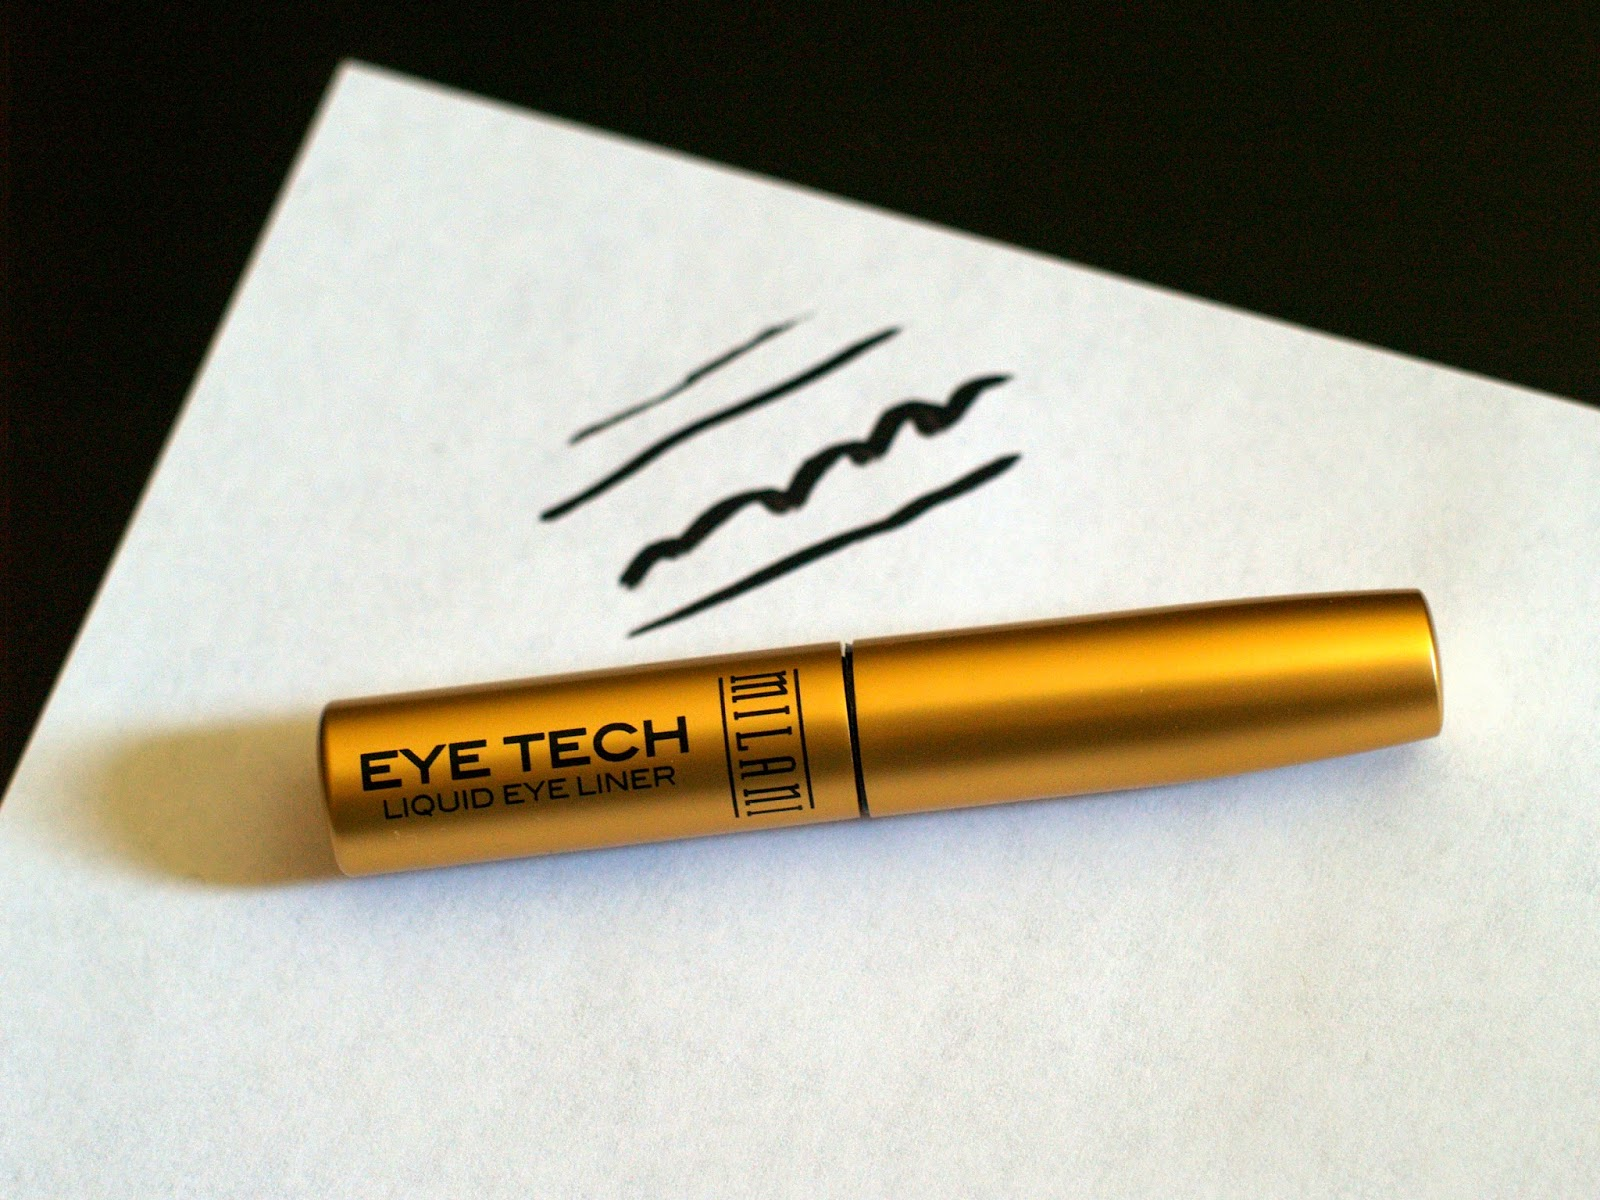 Eye Tech Liquid Eyeliner